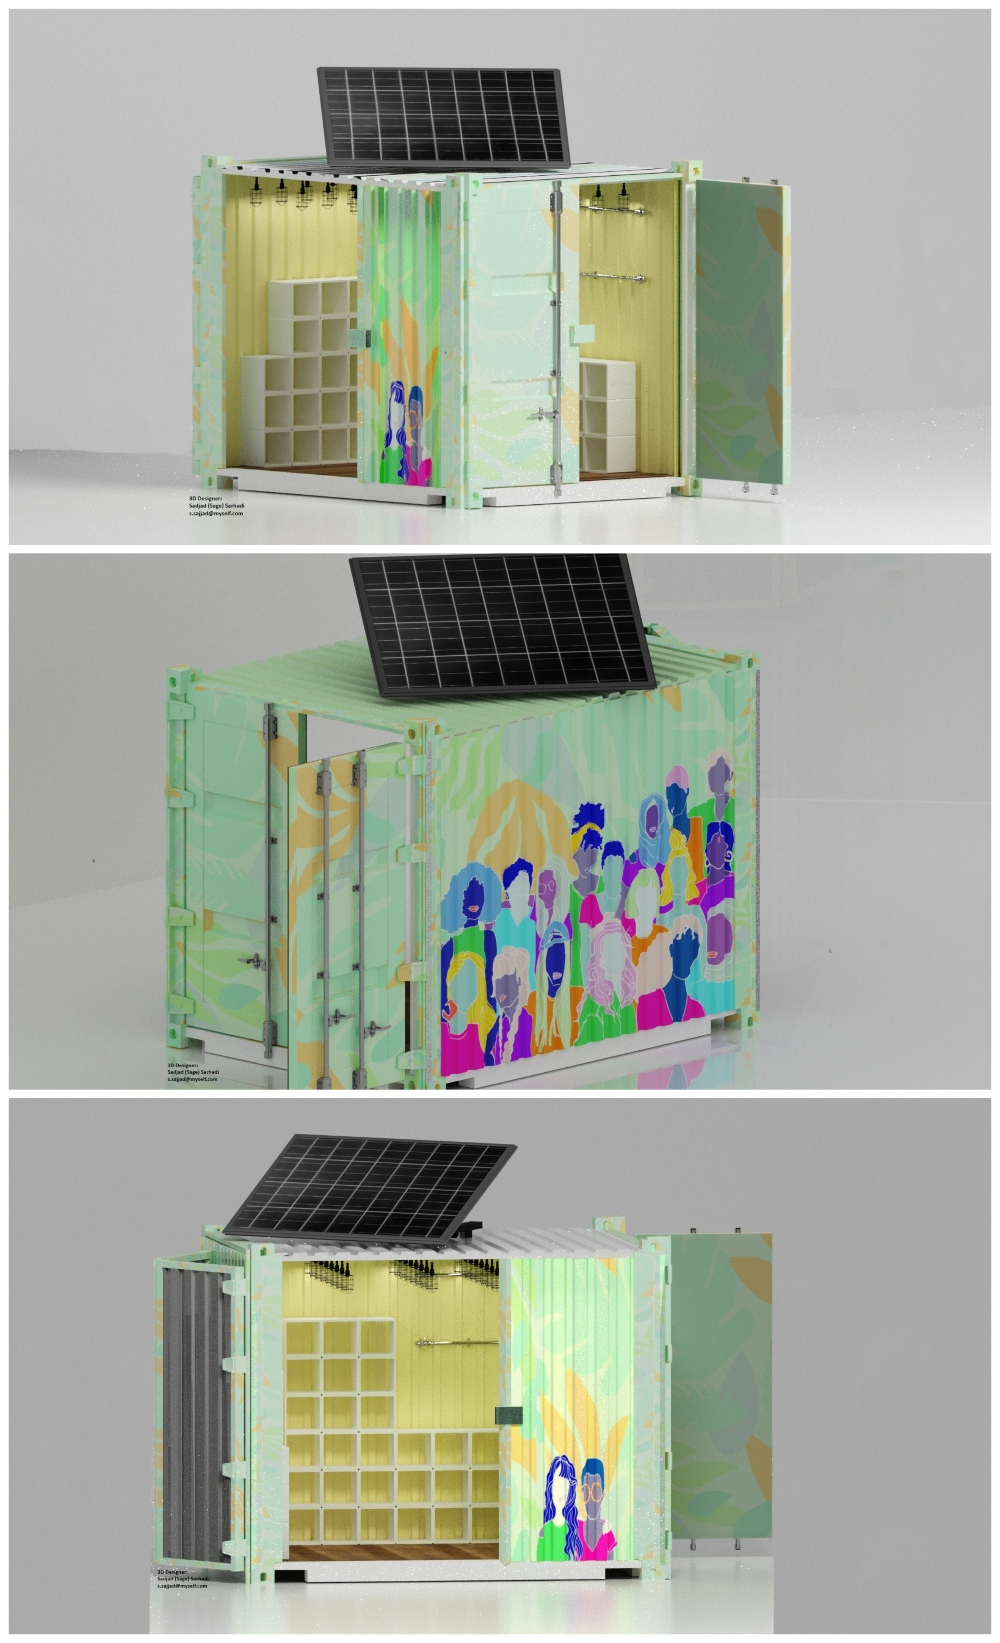 3D models of the Business of The Box container designed by Pourkeveh, Sarhadi and Haghshenas.